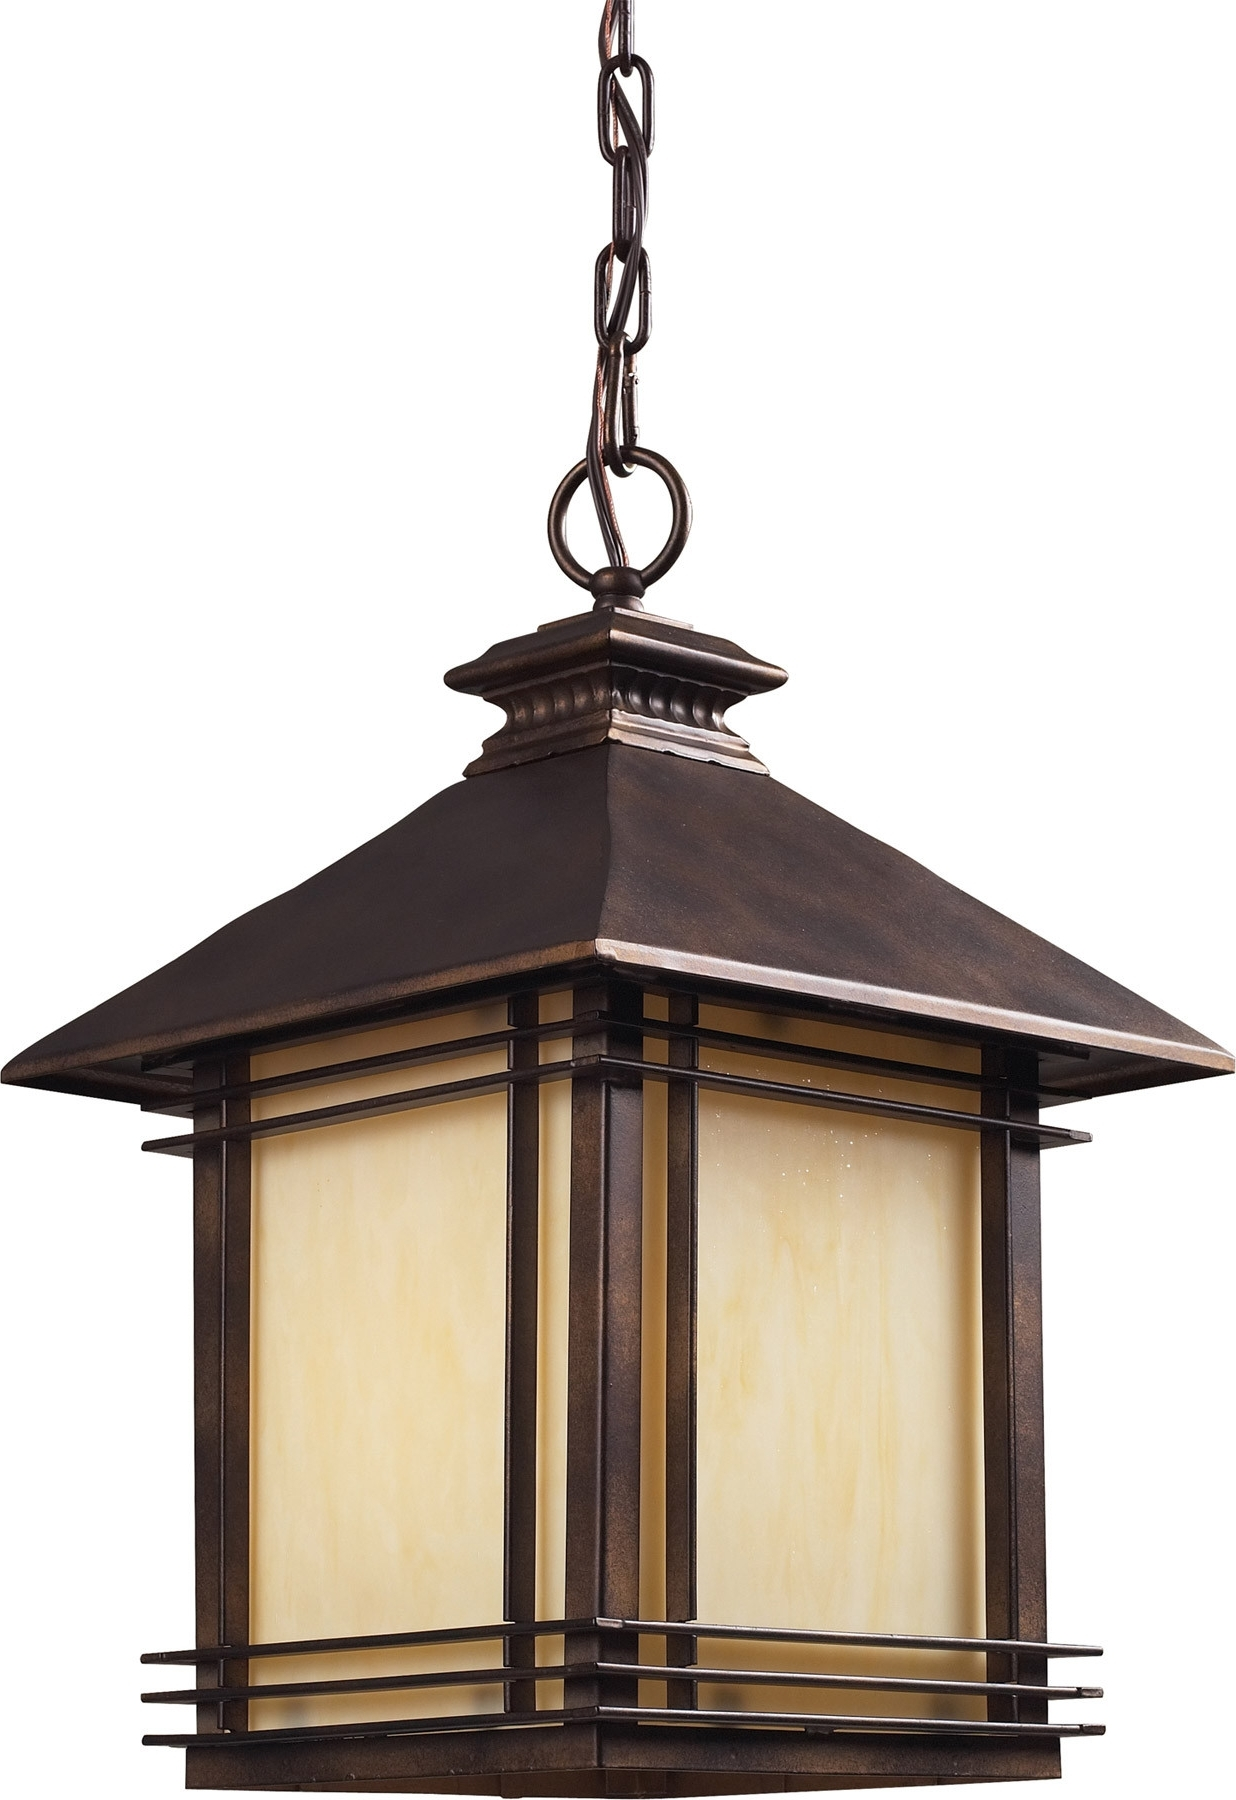 Outdoor Battery Lanterns For Patio Within Most Recent Solar Patio Lanterns Best Of Battery Operated Outdoor Hanging Lights (View 17 of 20)